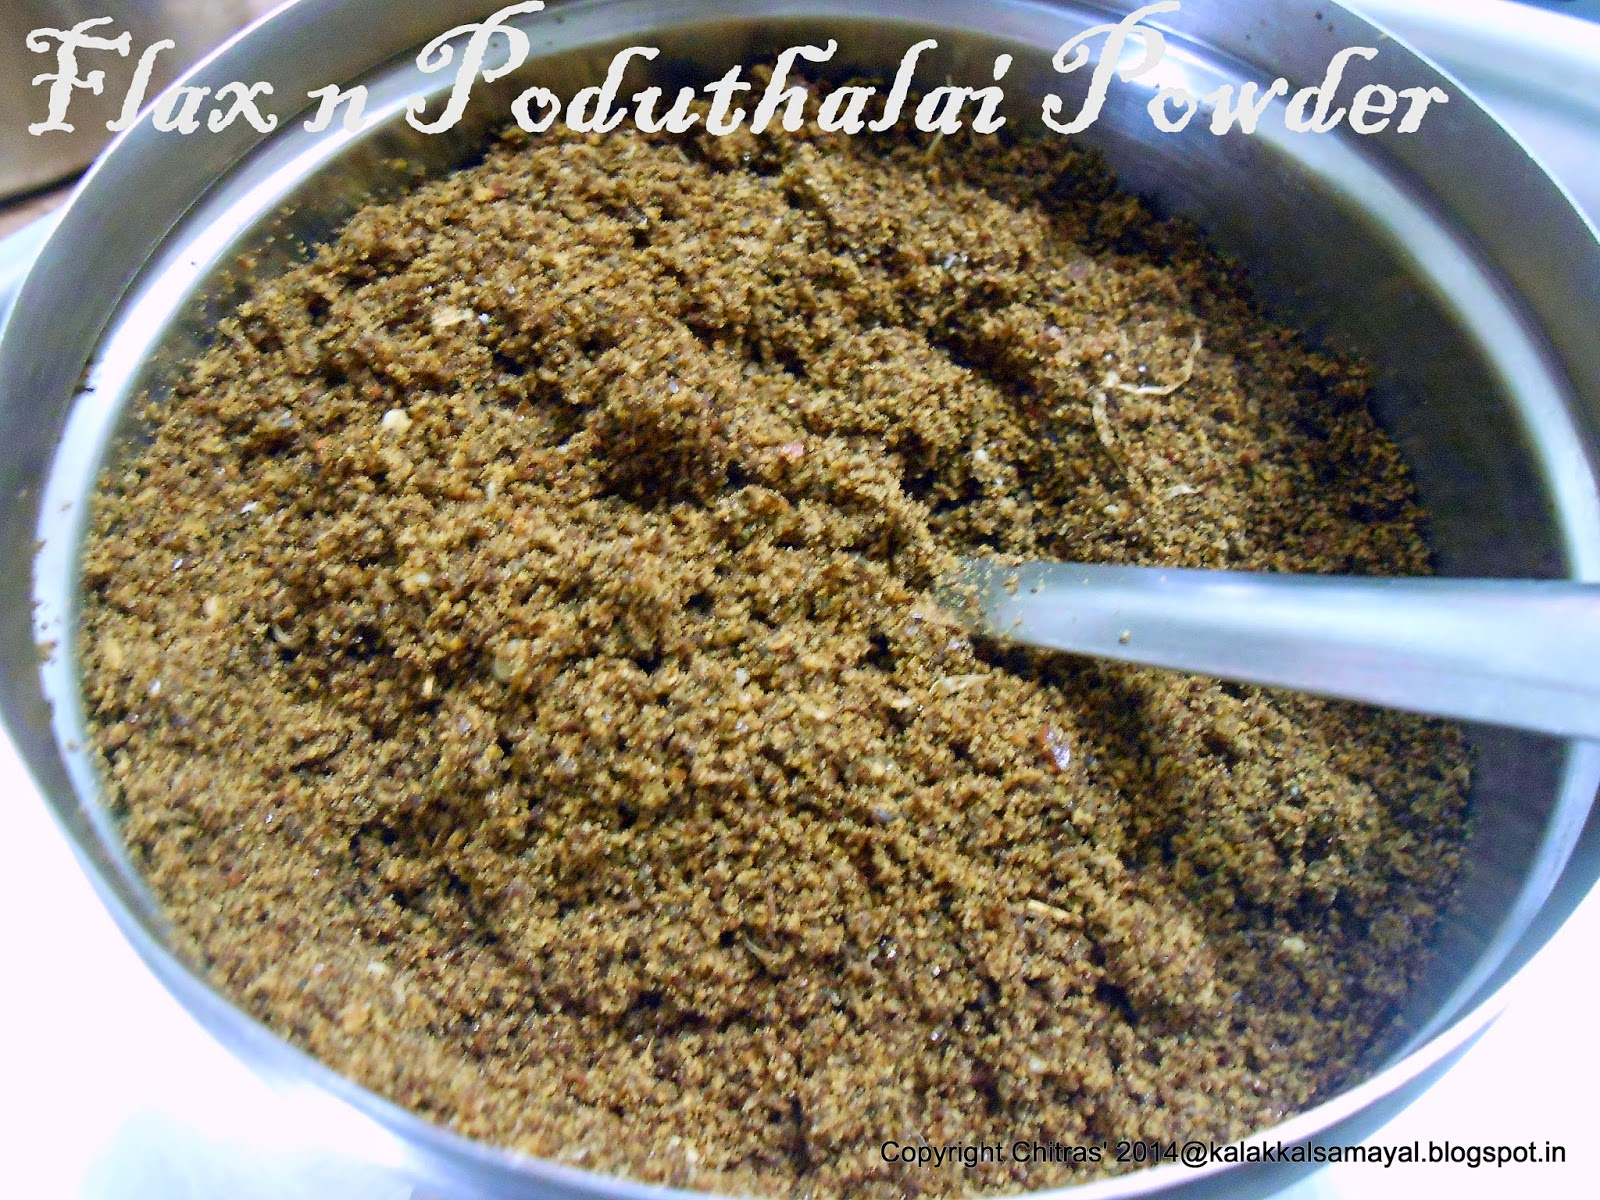 Flax and Poduthalai Powder for rice